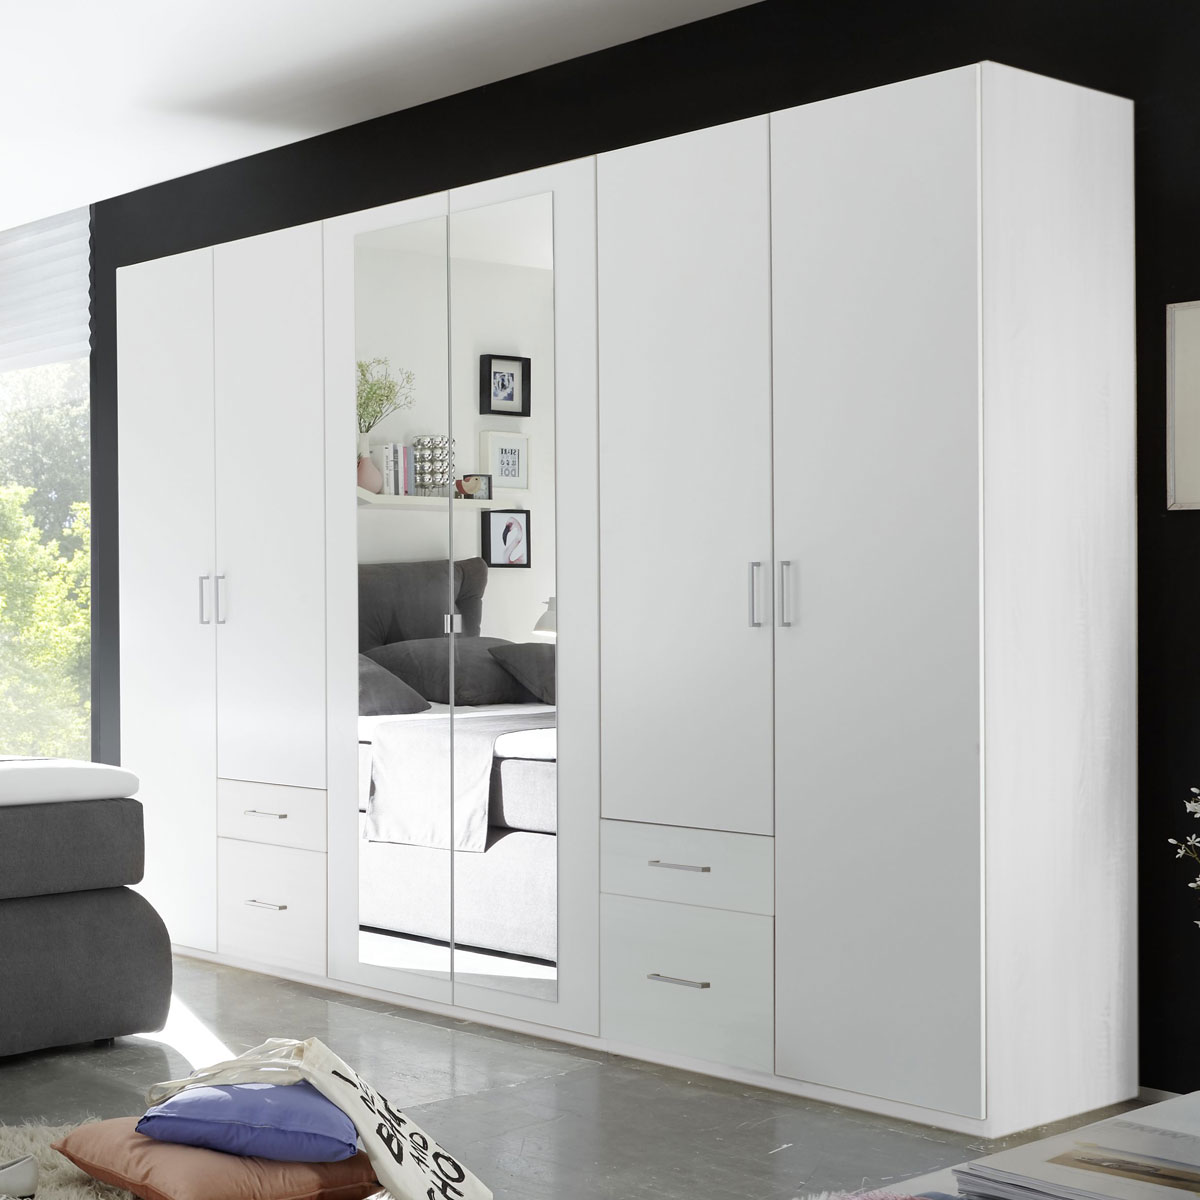 kleiderschrank fly schrank 6 t rig schlafzimmer wei mit spiegel b 270 cm ebay. Black Bedroom Furniture Sets. Home Design Ideas